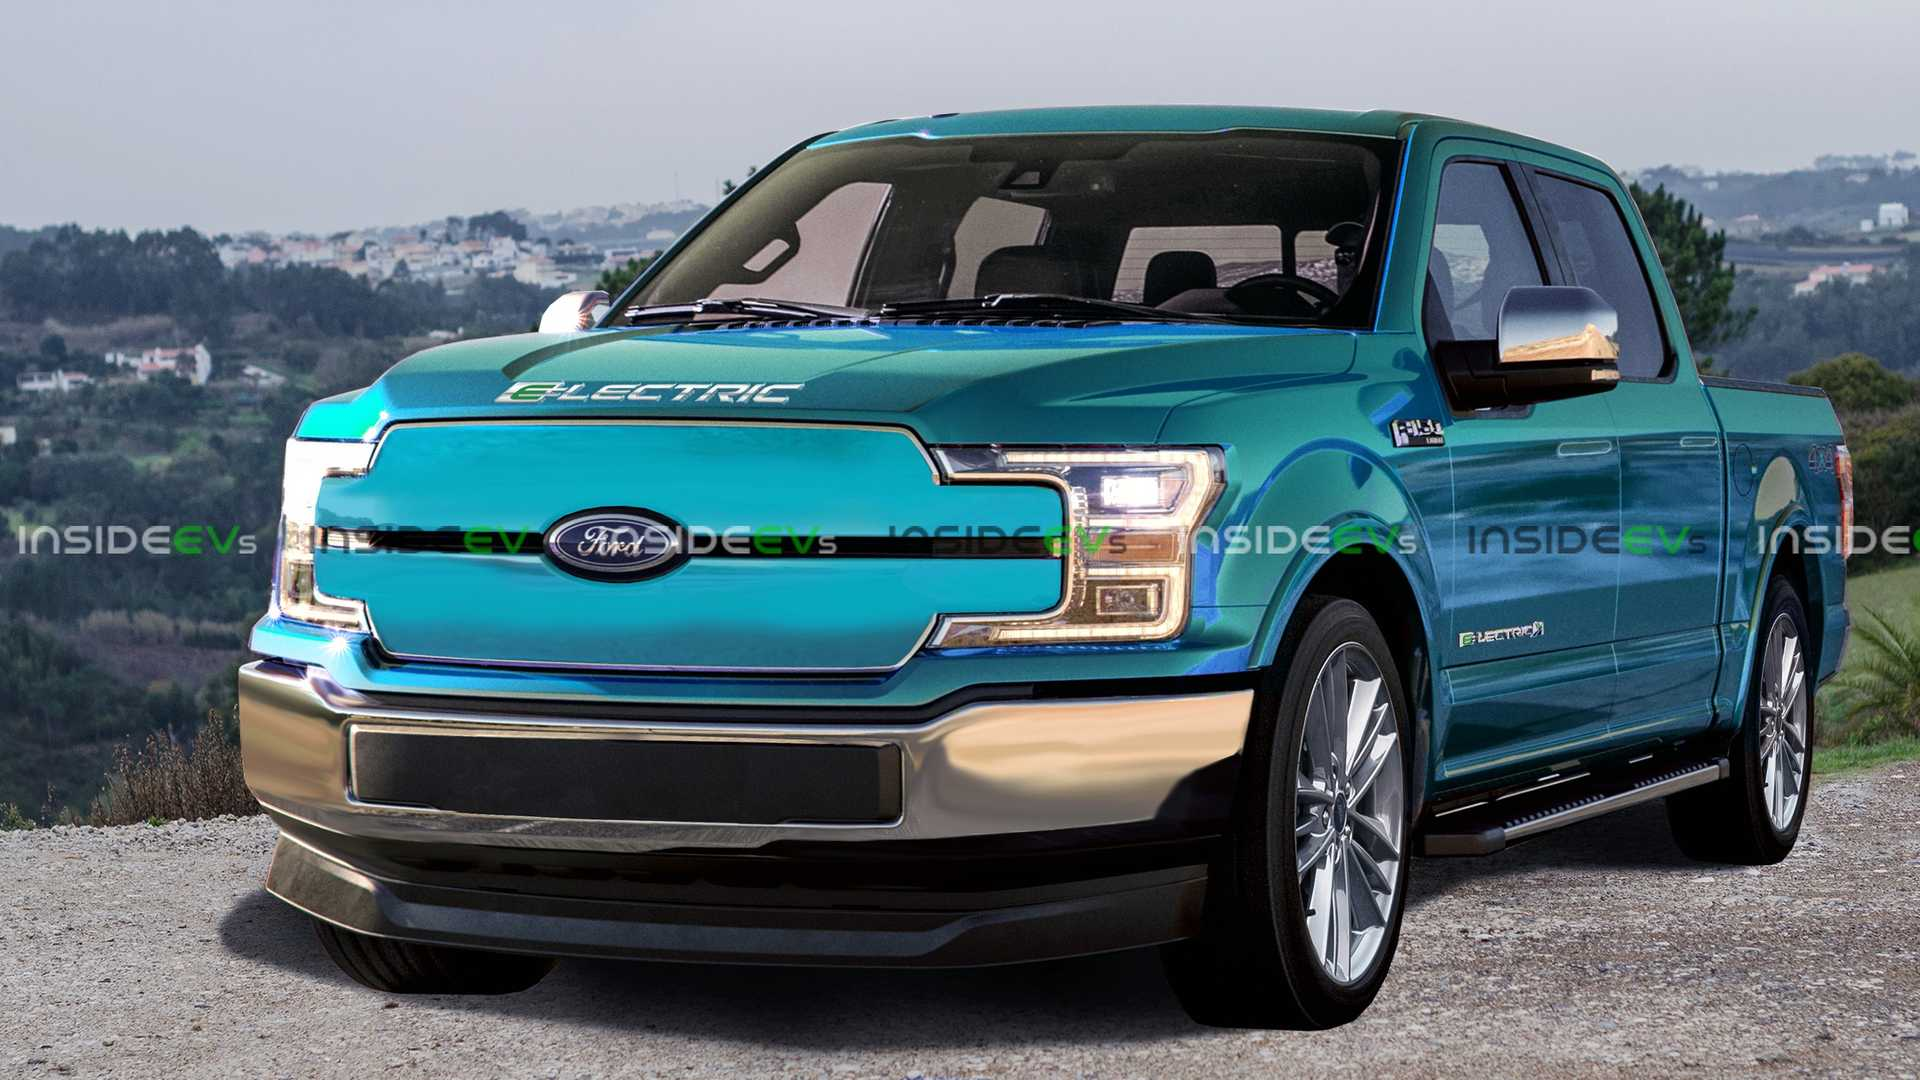 Ford F-150 Electric Truck Rendered: Mach-E Style Grille, Aero Mods